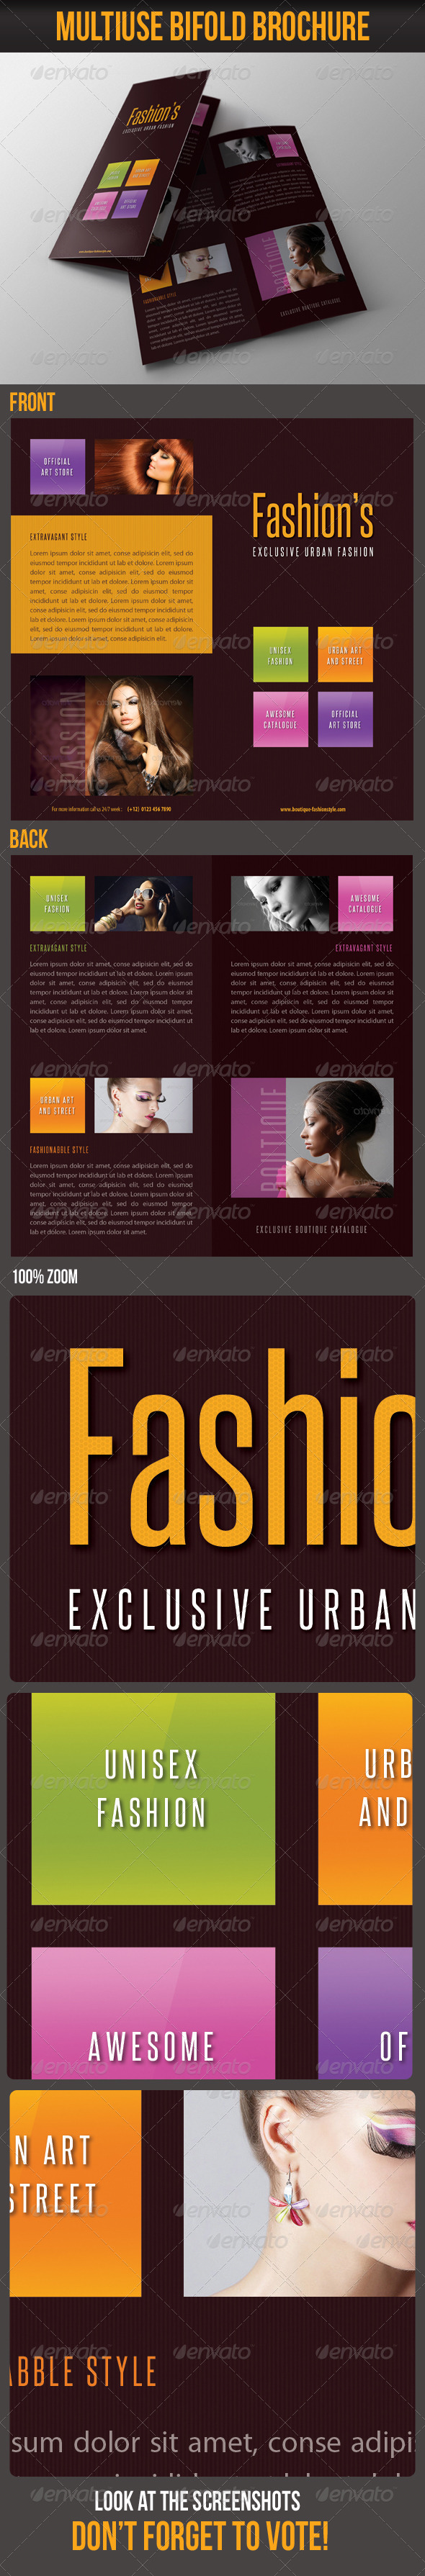 GraphicRiver Multiuse Bifold Brochure 54 7063295